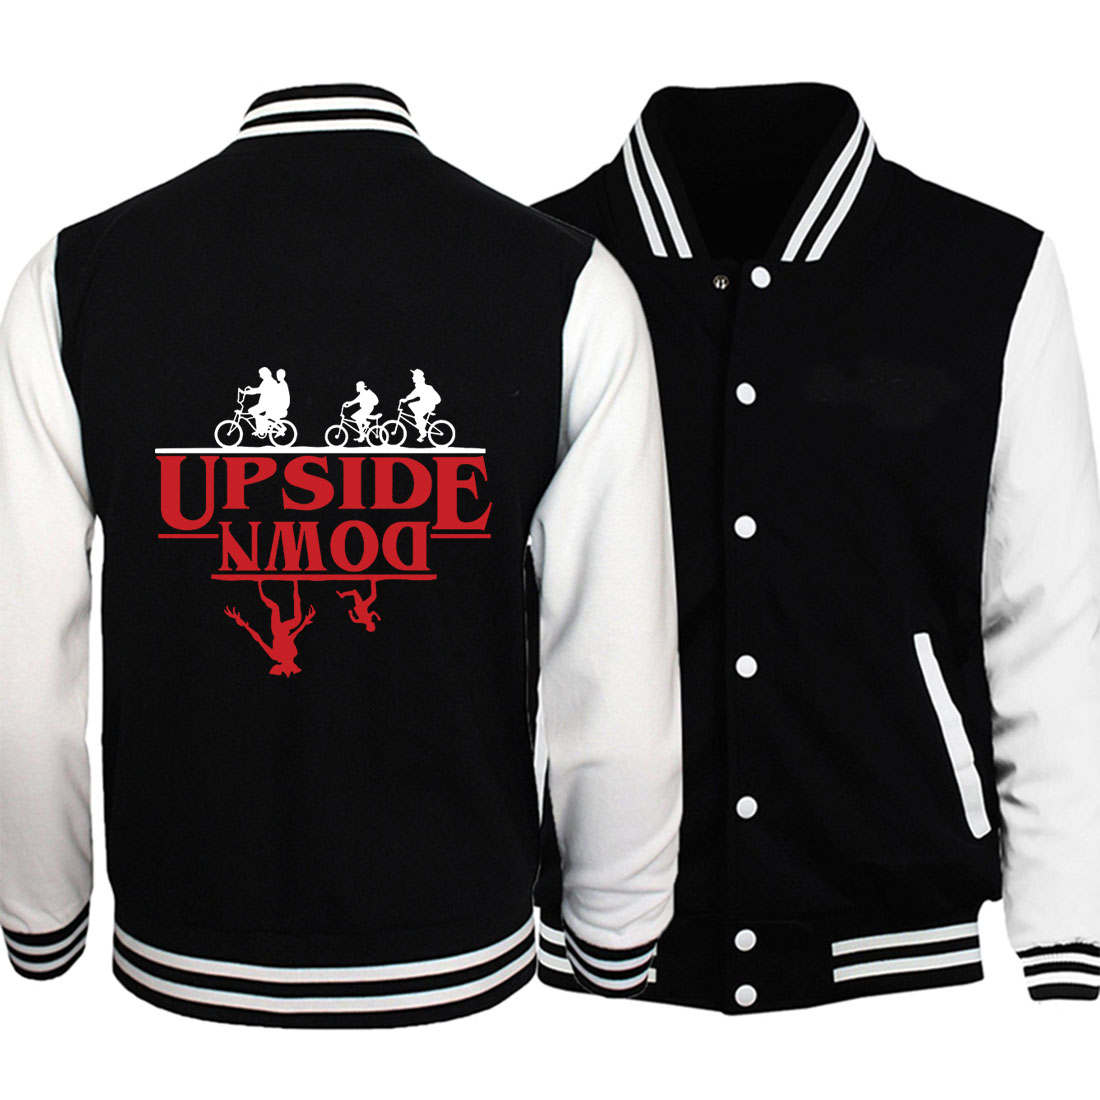 Plus Size Fitness Coats Fashion Hoodies 2019 New Stranger Things Baseball Jackets Funny Deadpool Printing Sweatshirts Men S-5XL